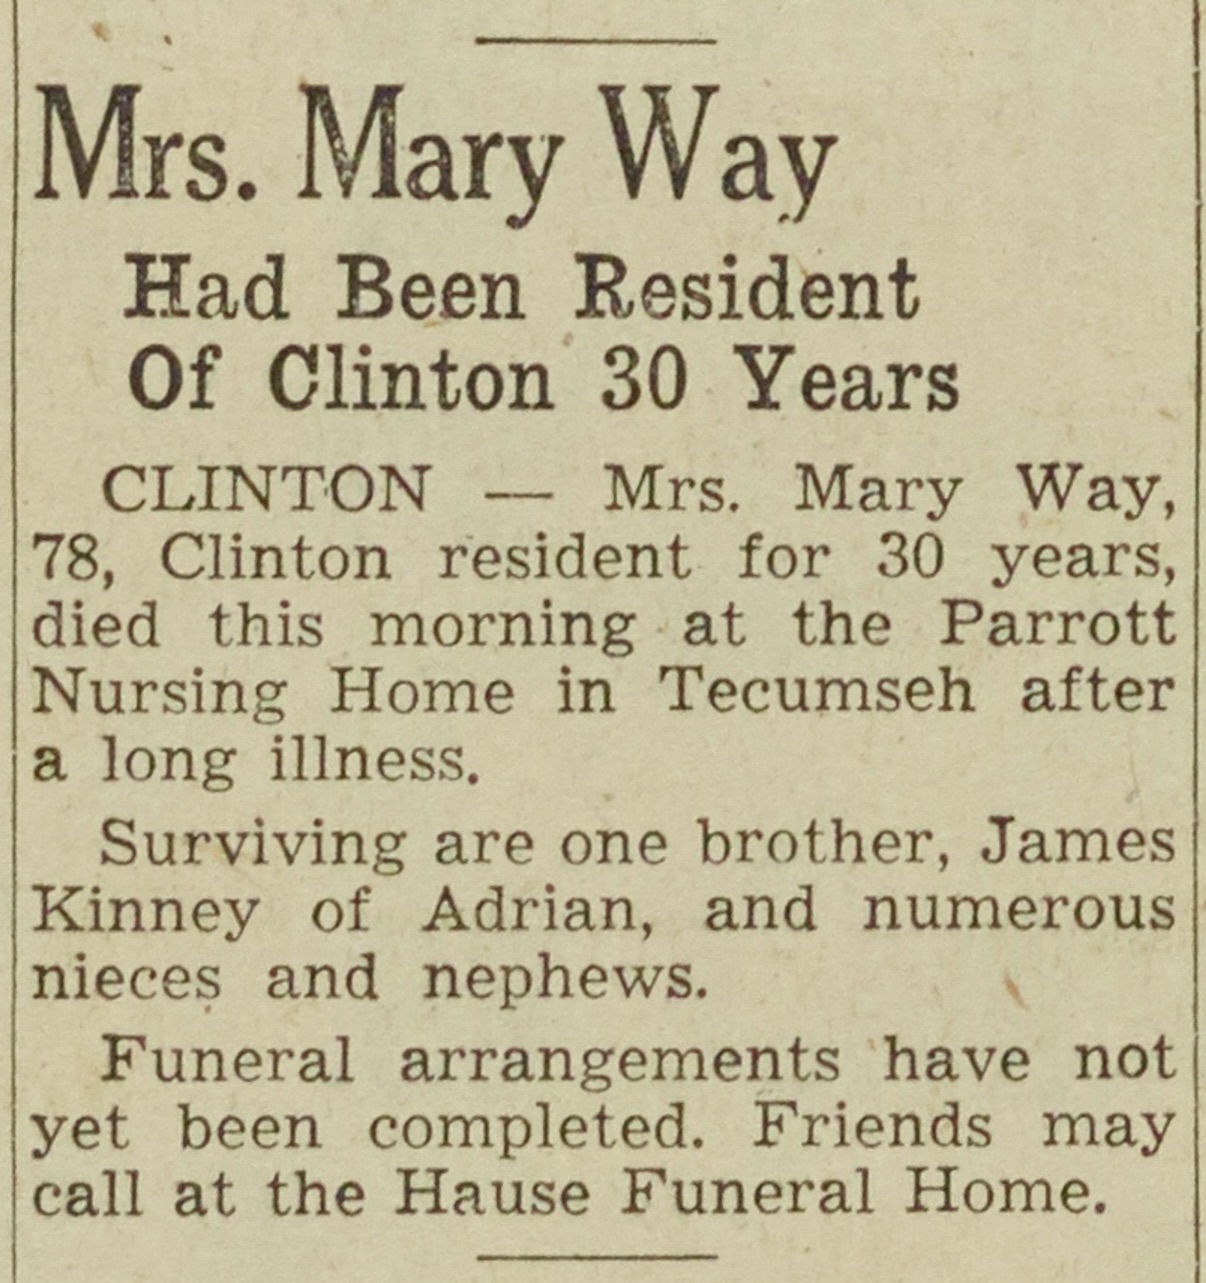 Mrs. Mary Way image